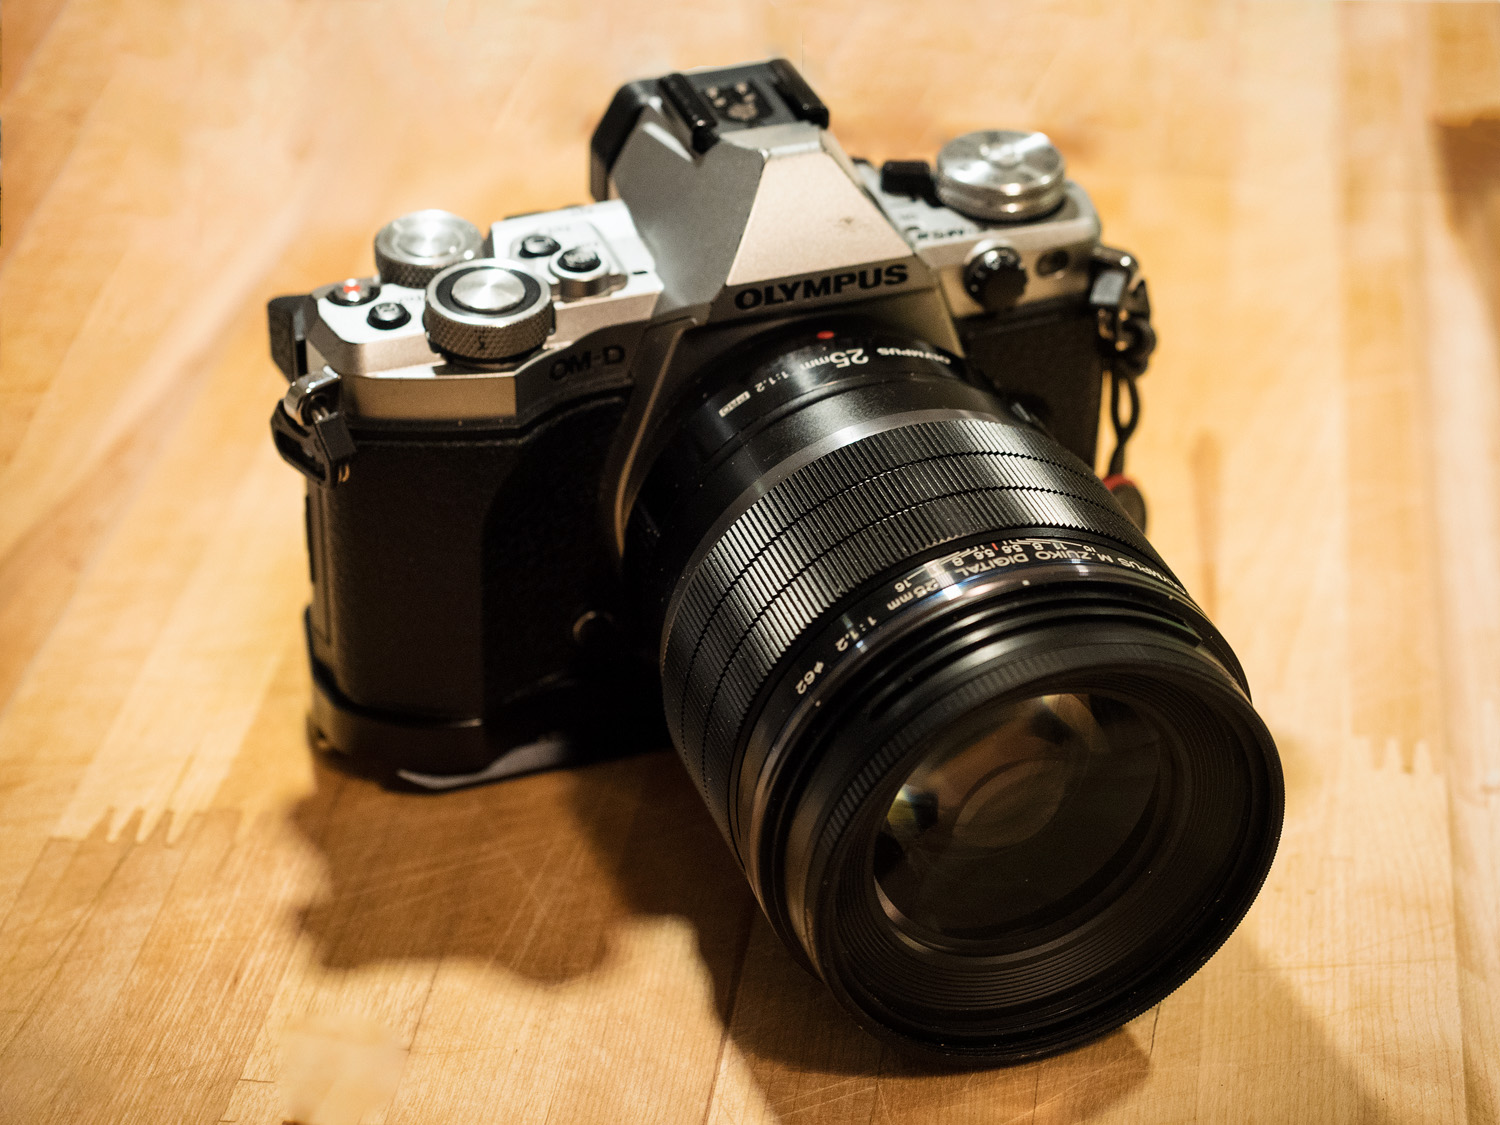 Image: Modern digital cameras produce high-resolution images